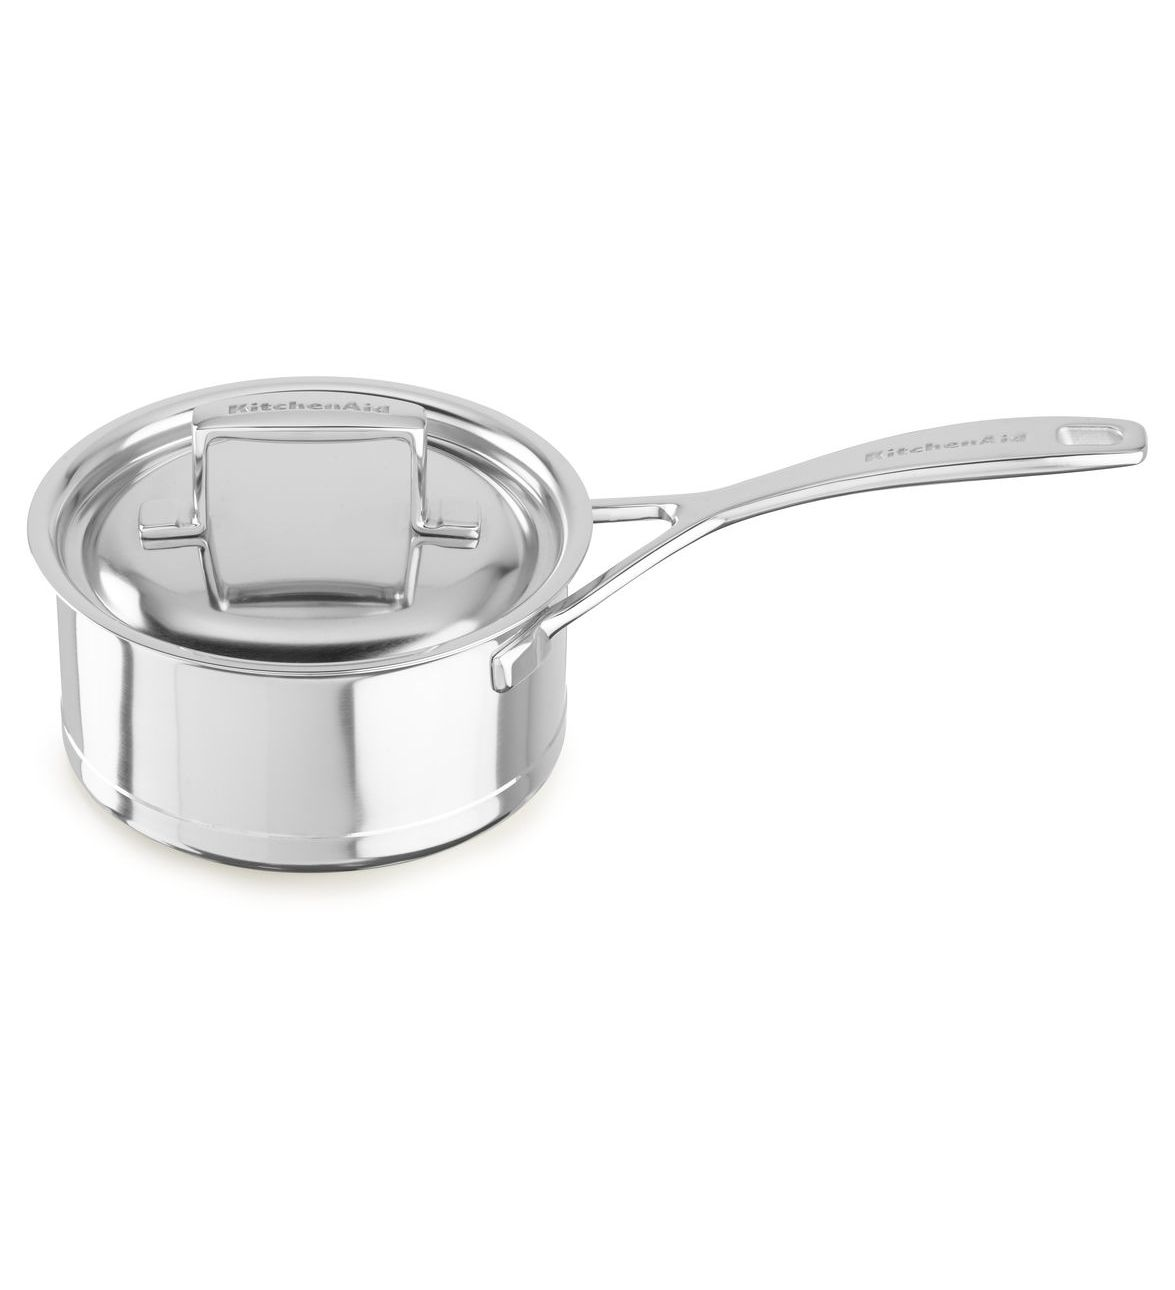 KitchenAid® Professional Seven-Ply 1.5-Quart Saucepan